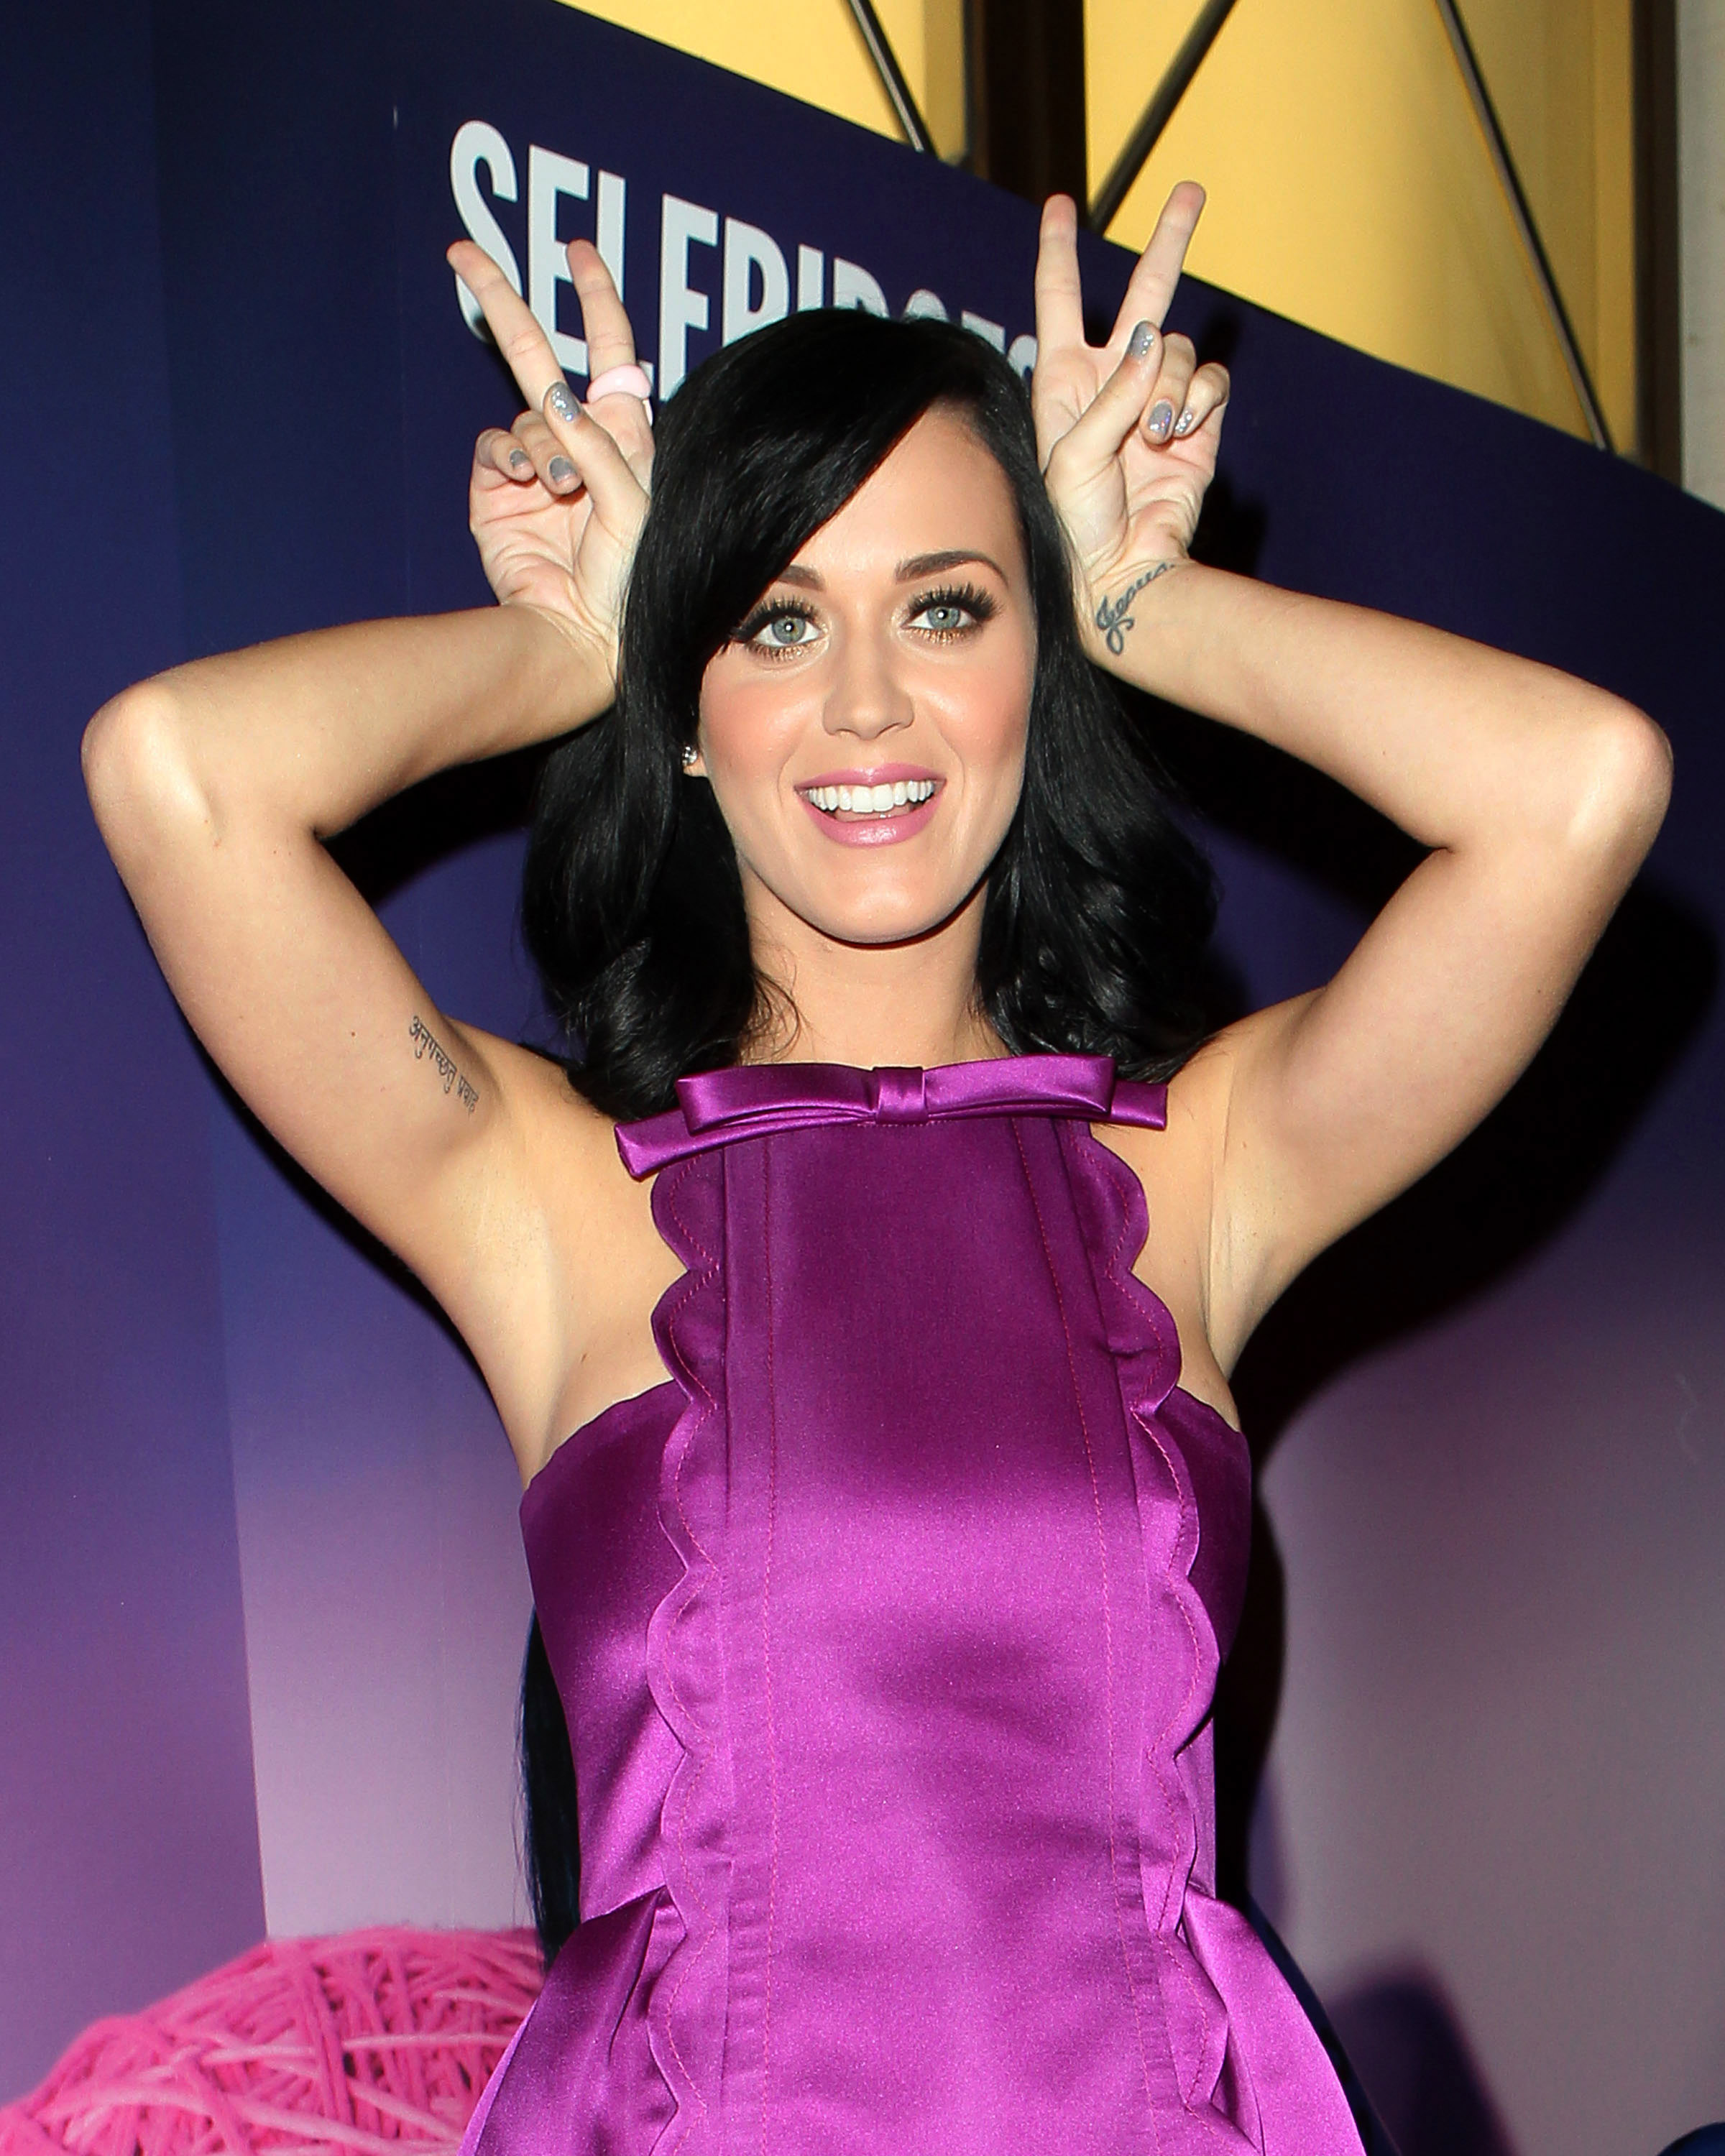 katy perry promoting her new fragrance purr at selfridges